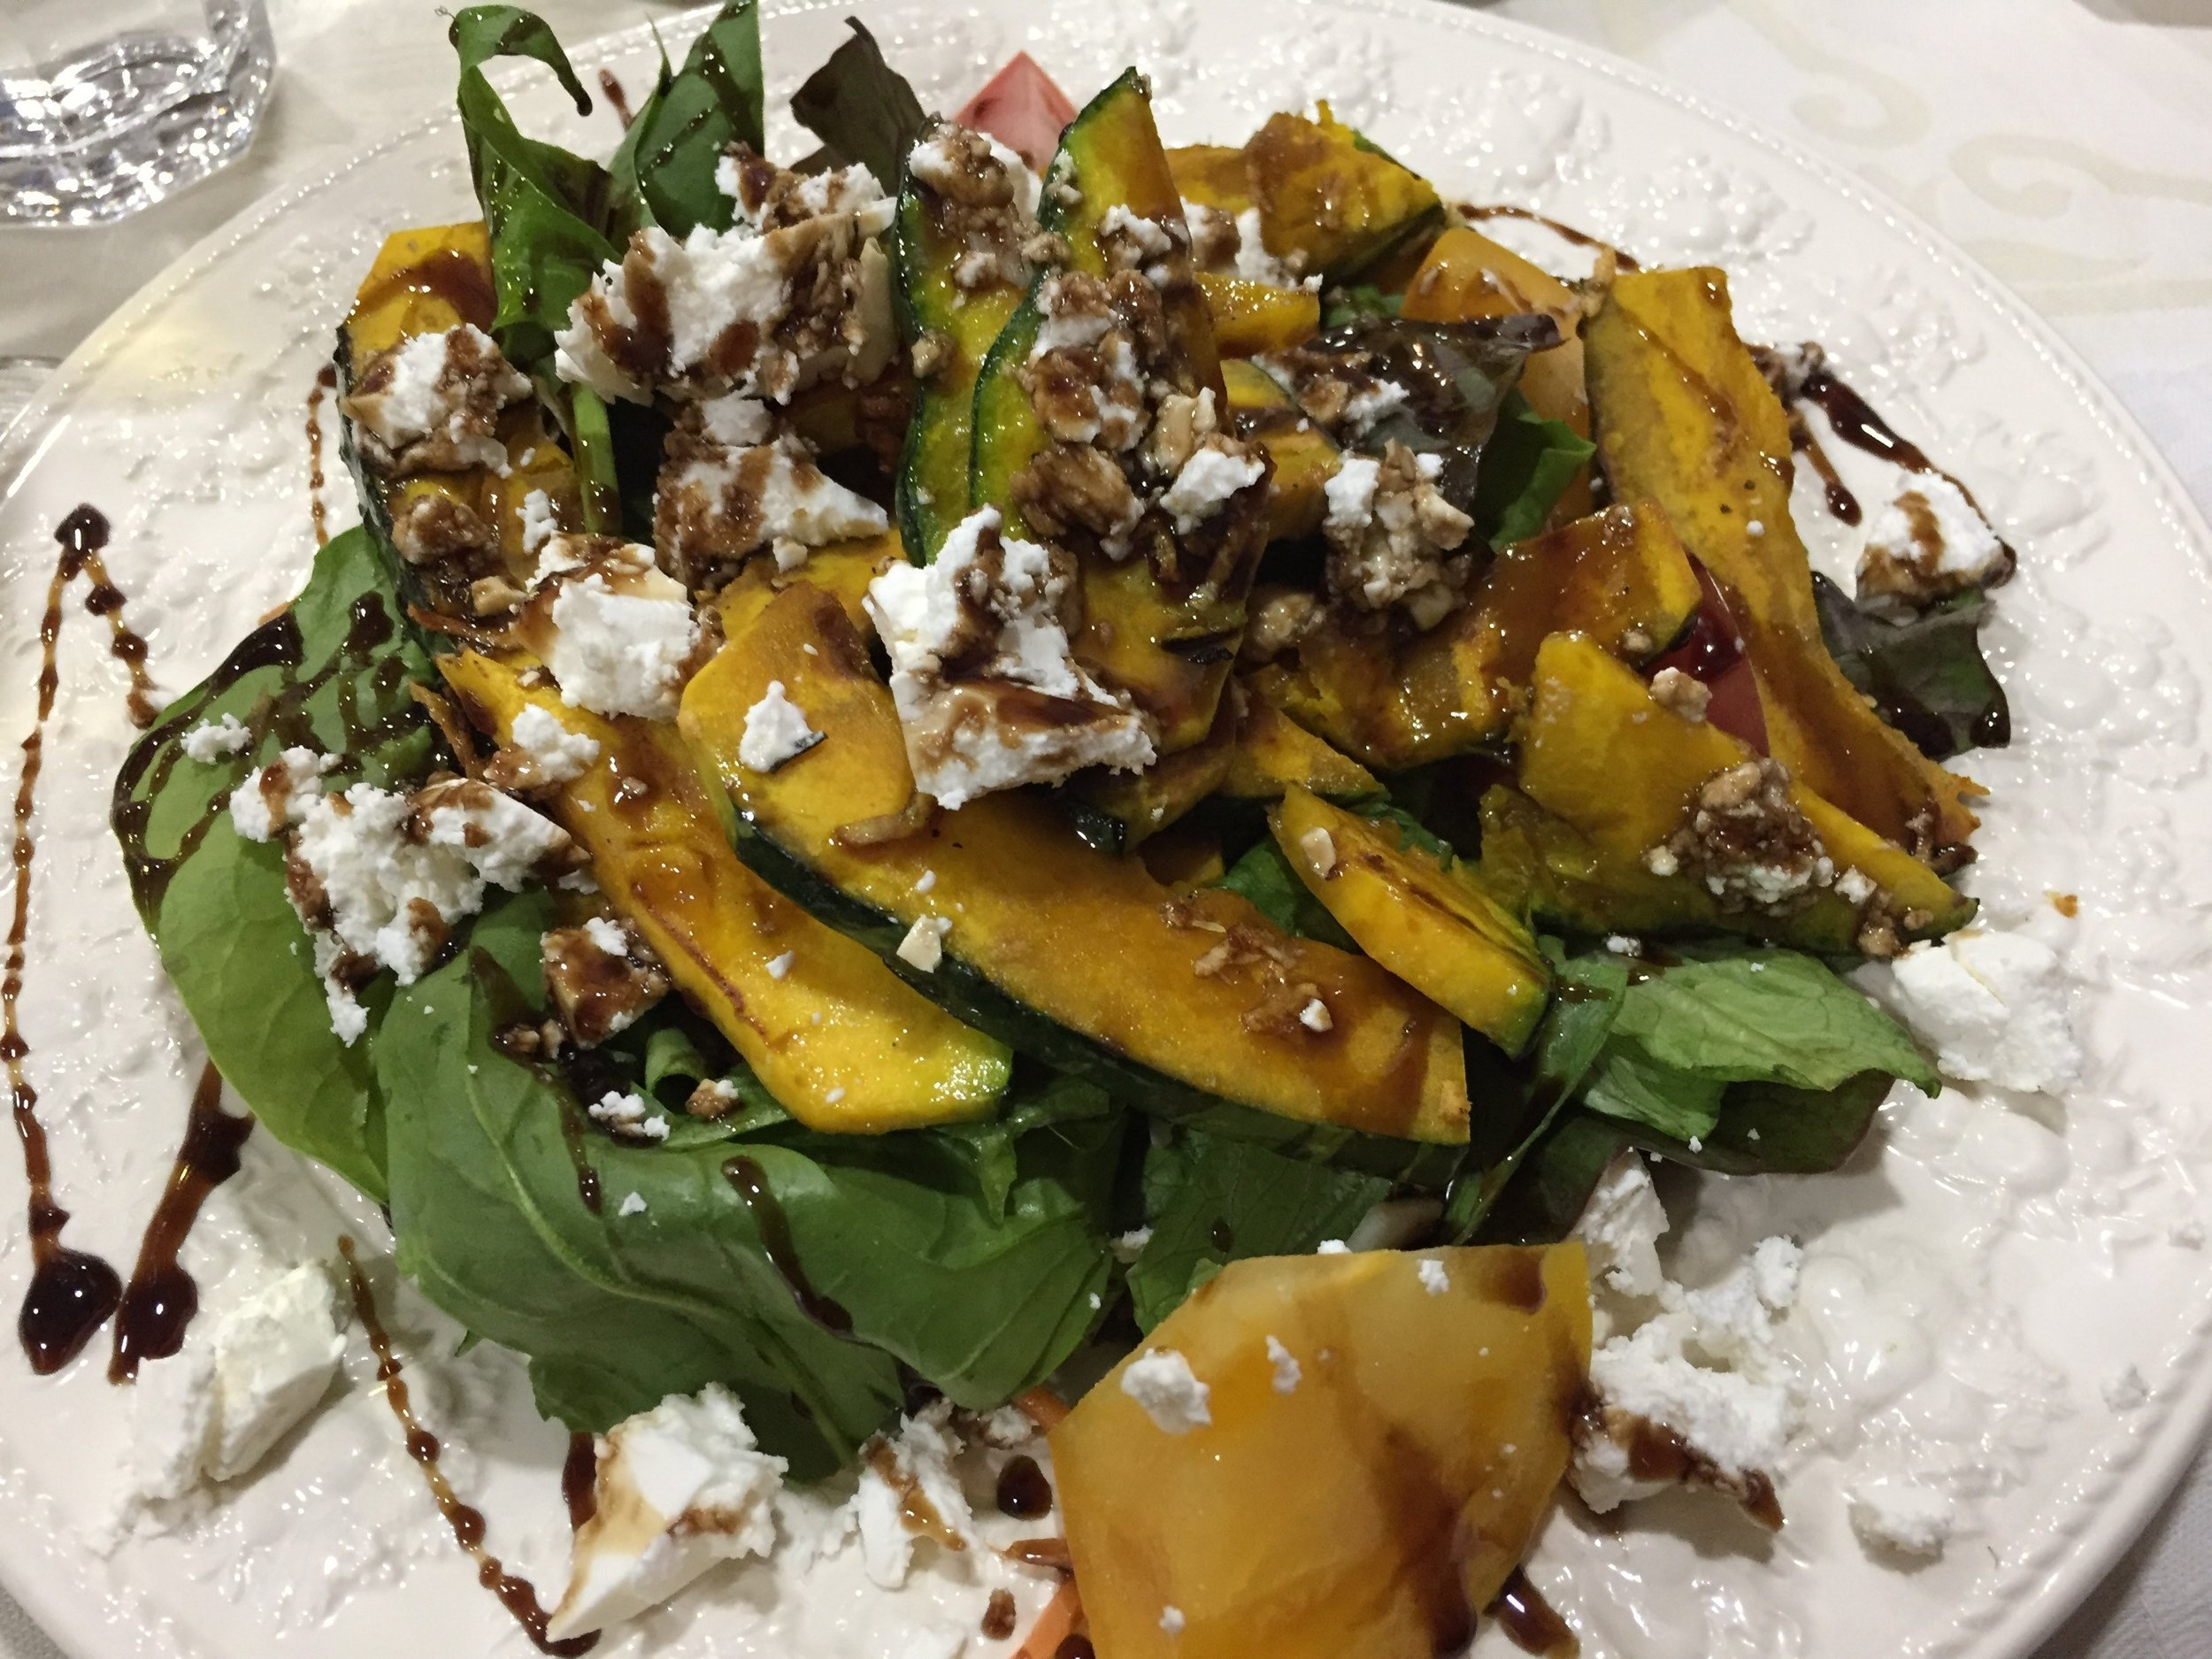 Pumpkin Salad from Farm to Table Restaurant in Sakhalin, Russia (The Black Cat)